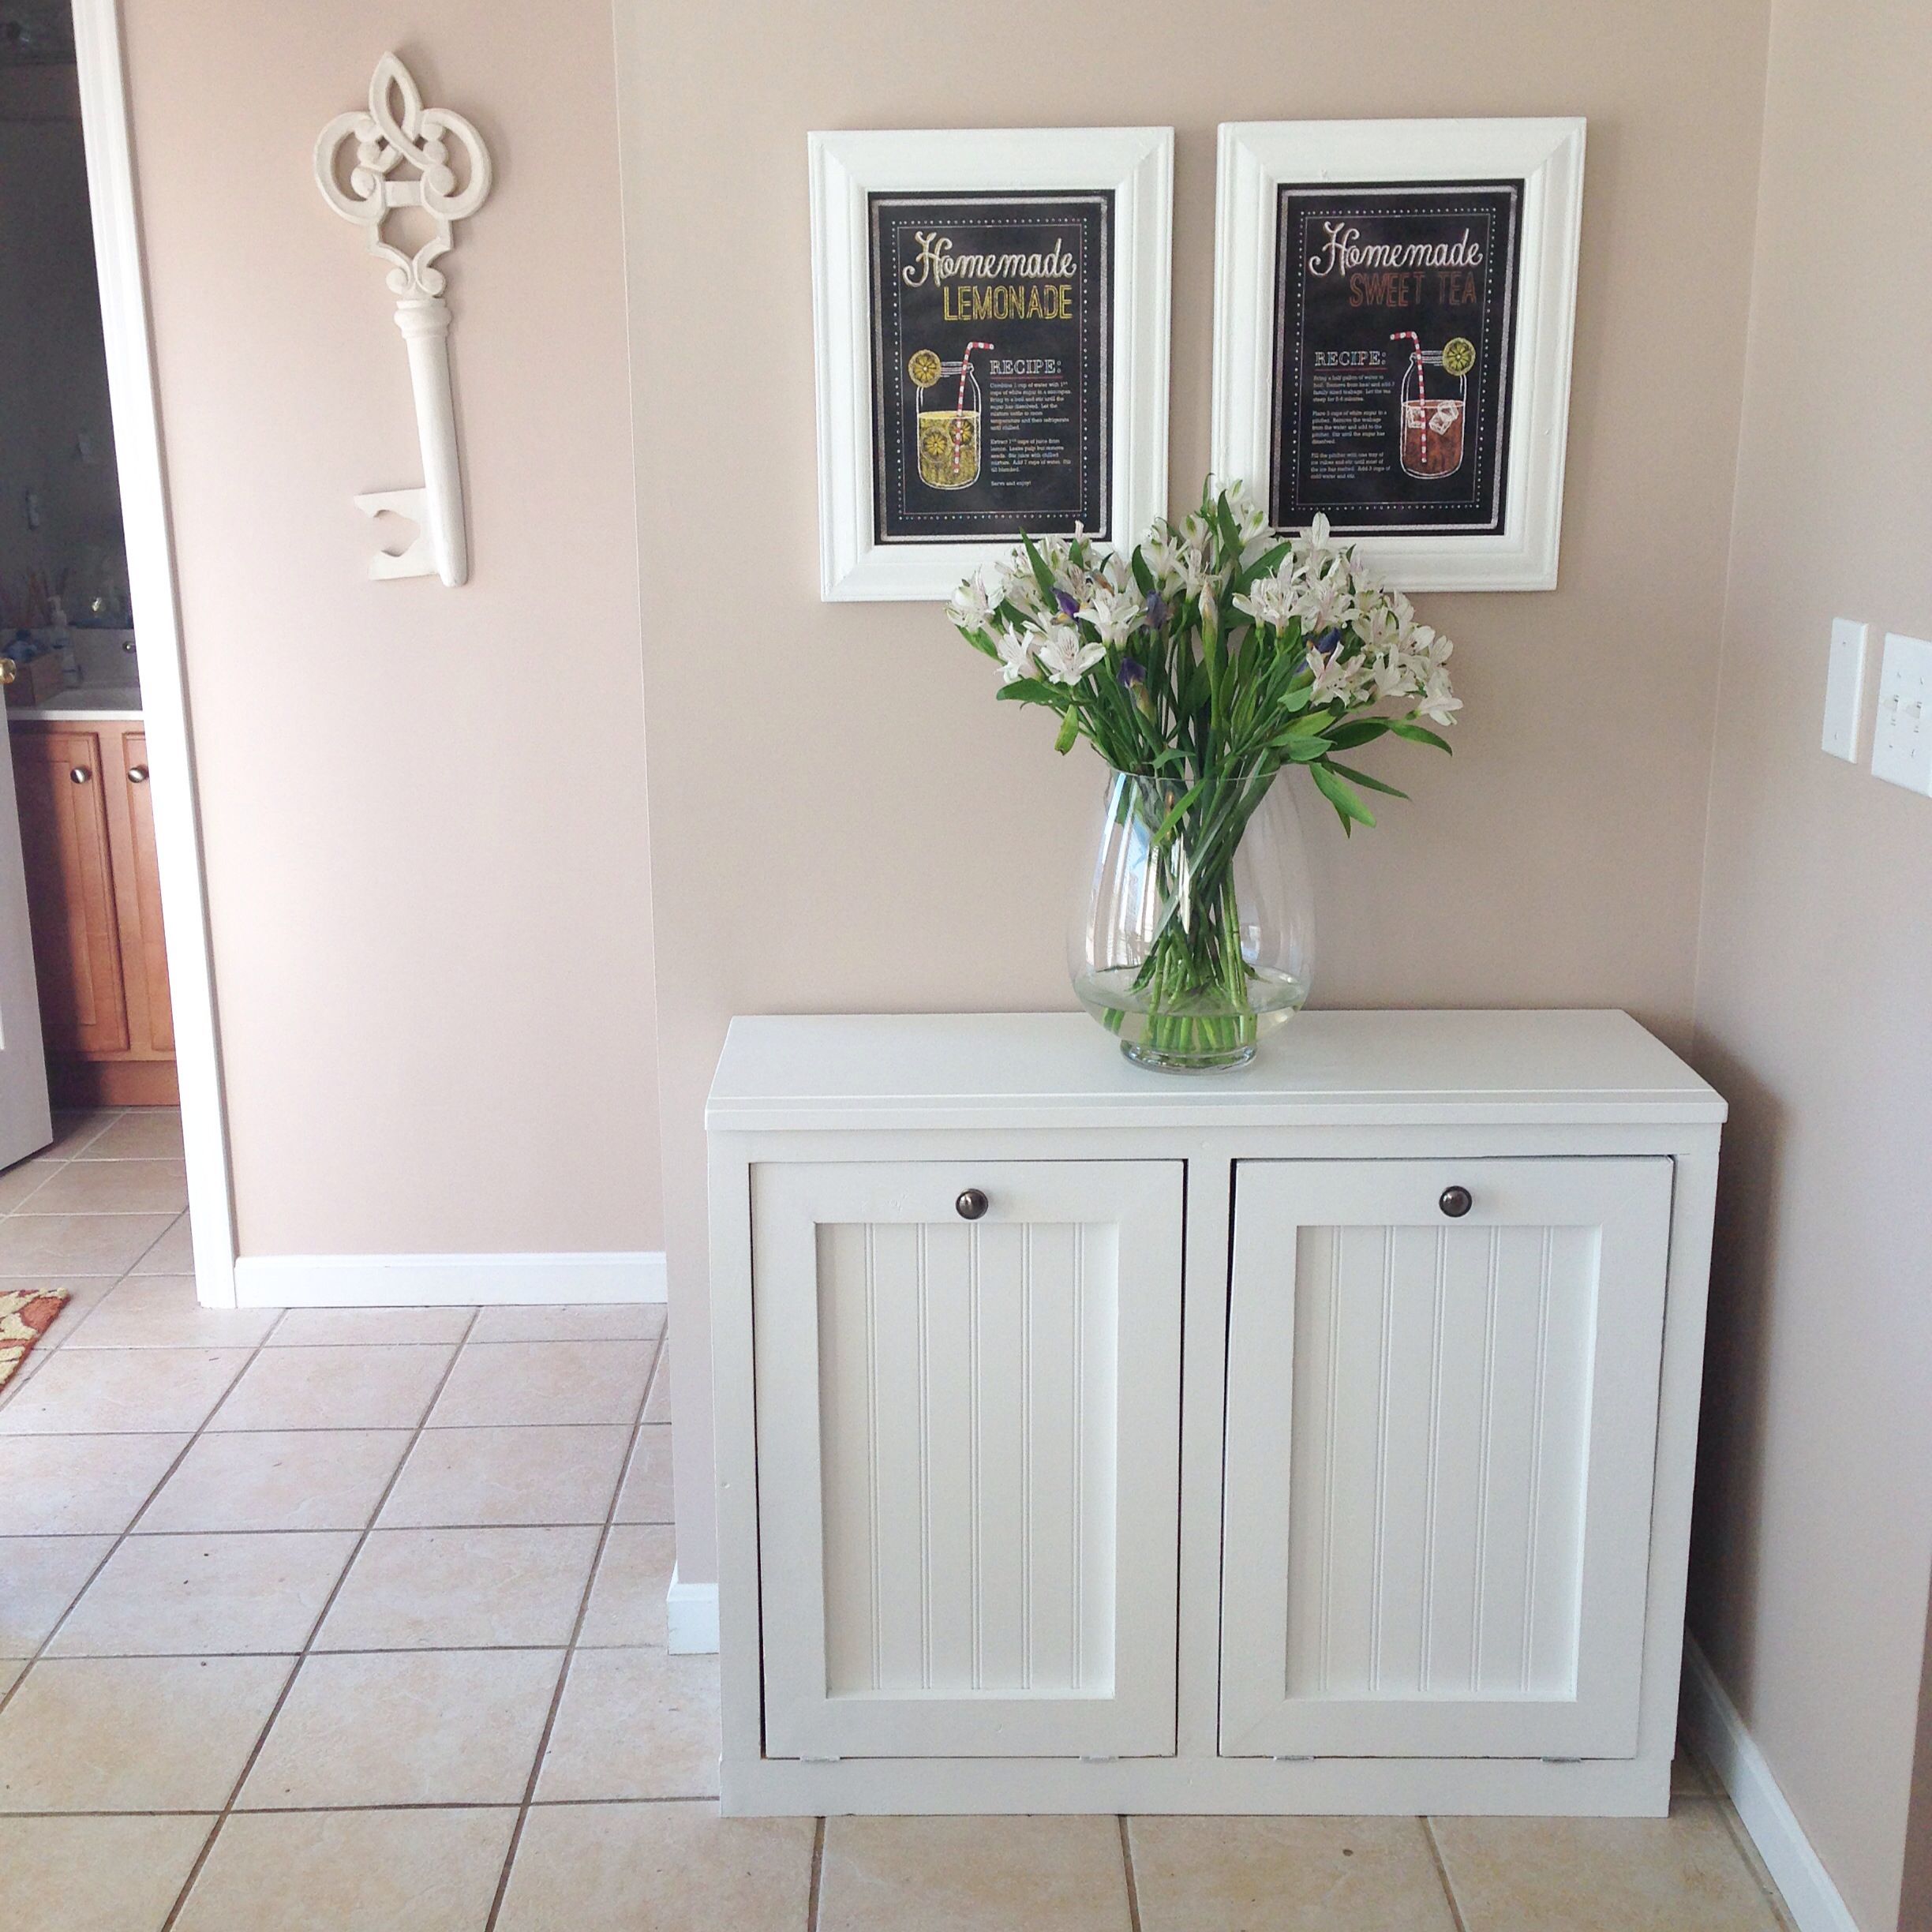 Ana White wood tilt out trash and recycling bin that my husband made ...